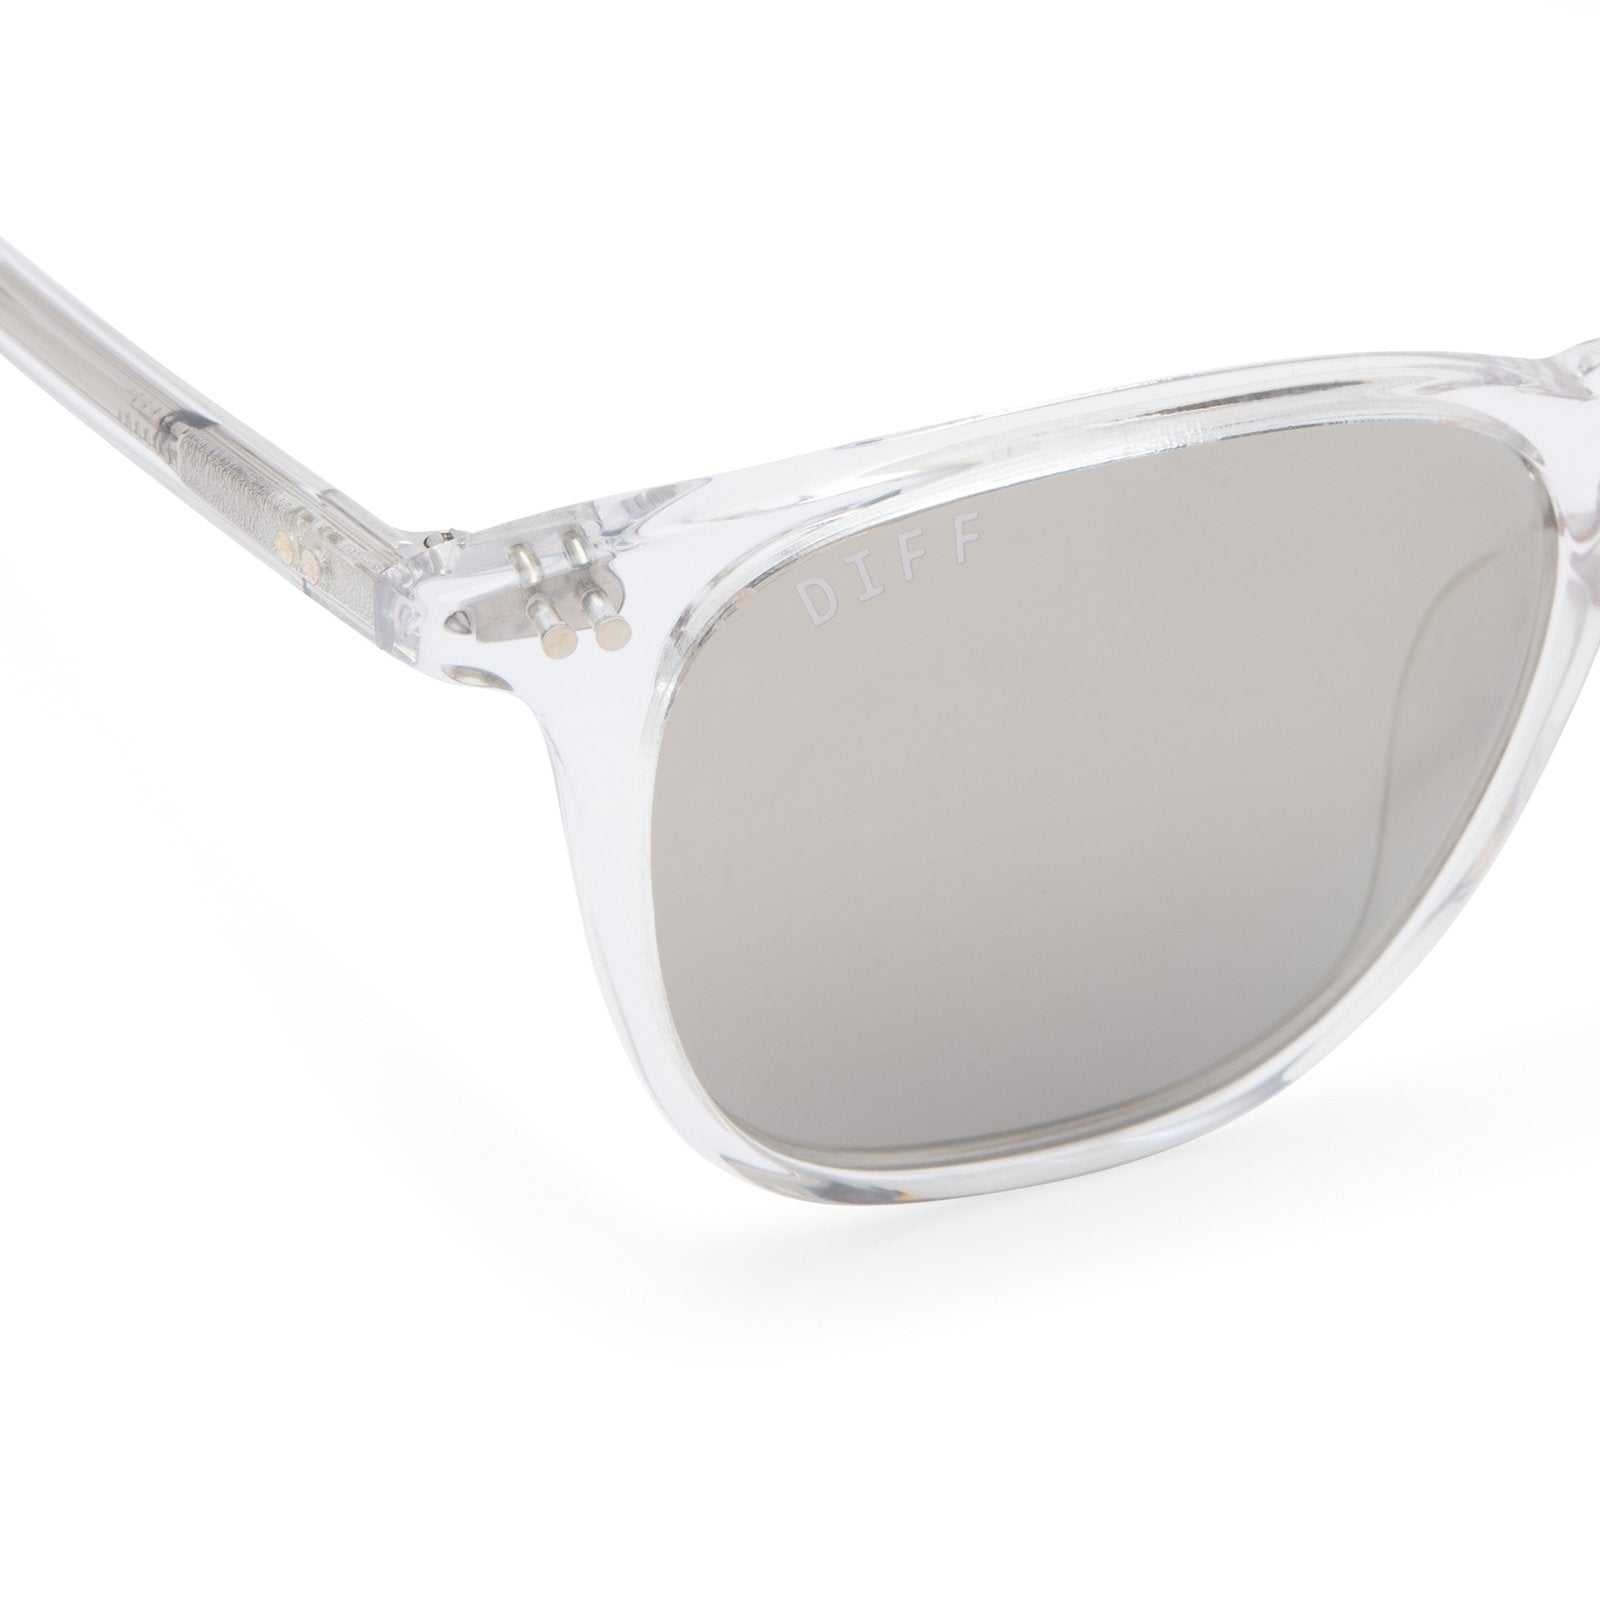 Maxwell sunglasses with clear crystal frames and grey mirror polarized lens detail view